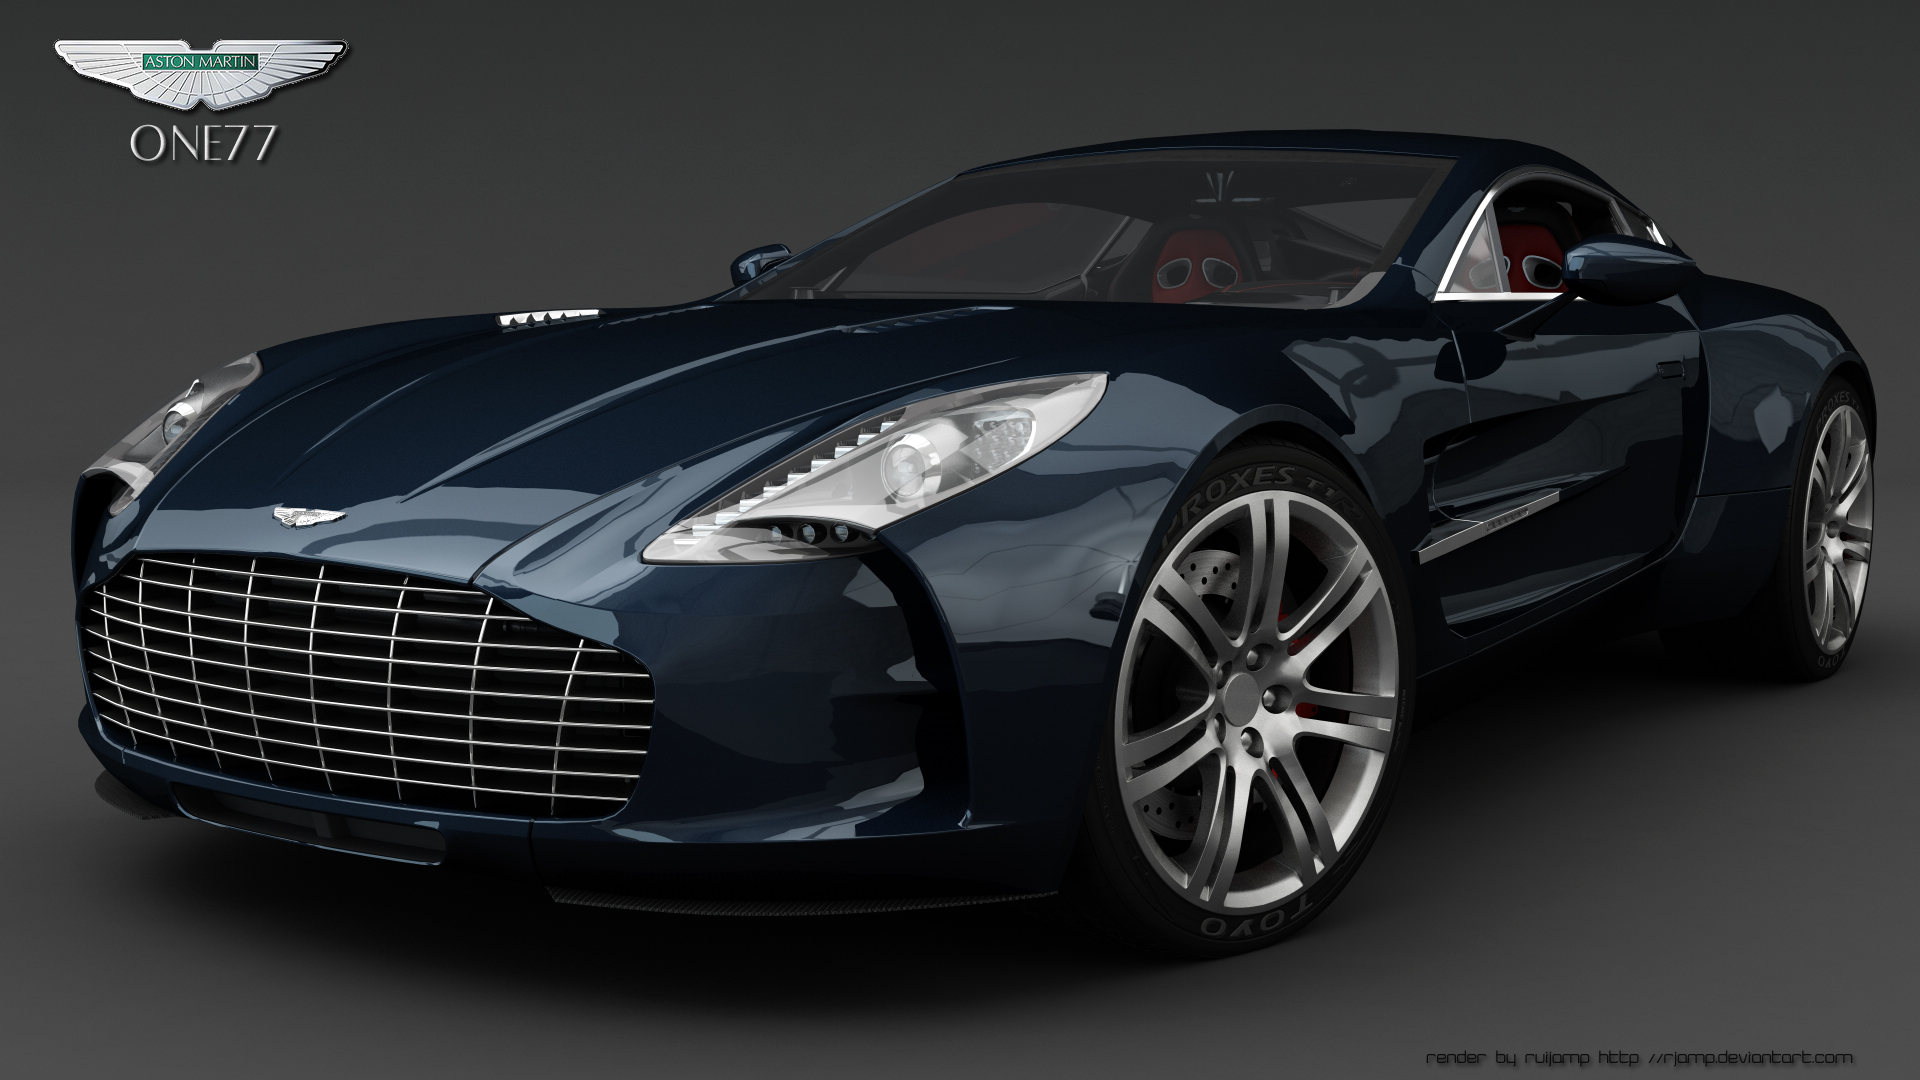 aston martin one 77 black. aston martin one 77 black wallpaper 2